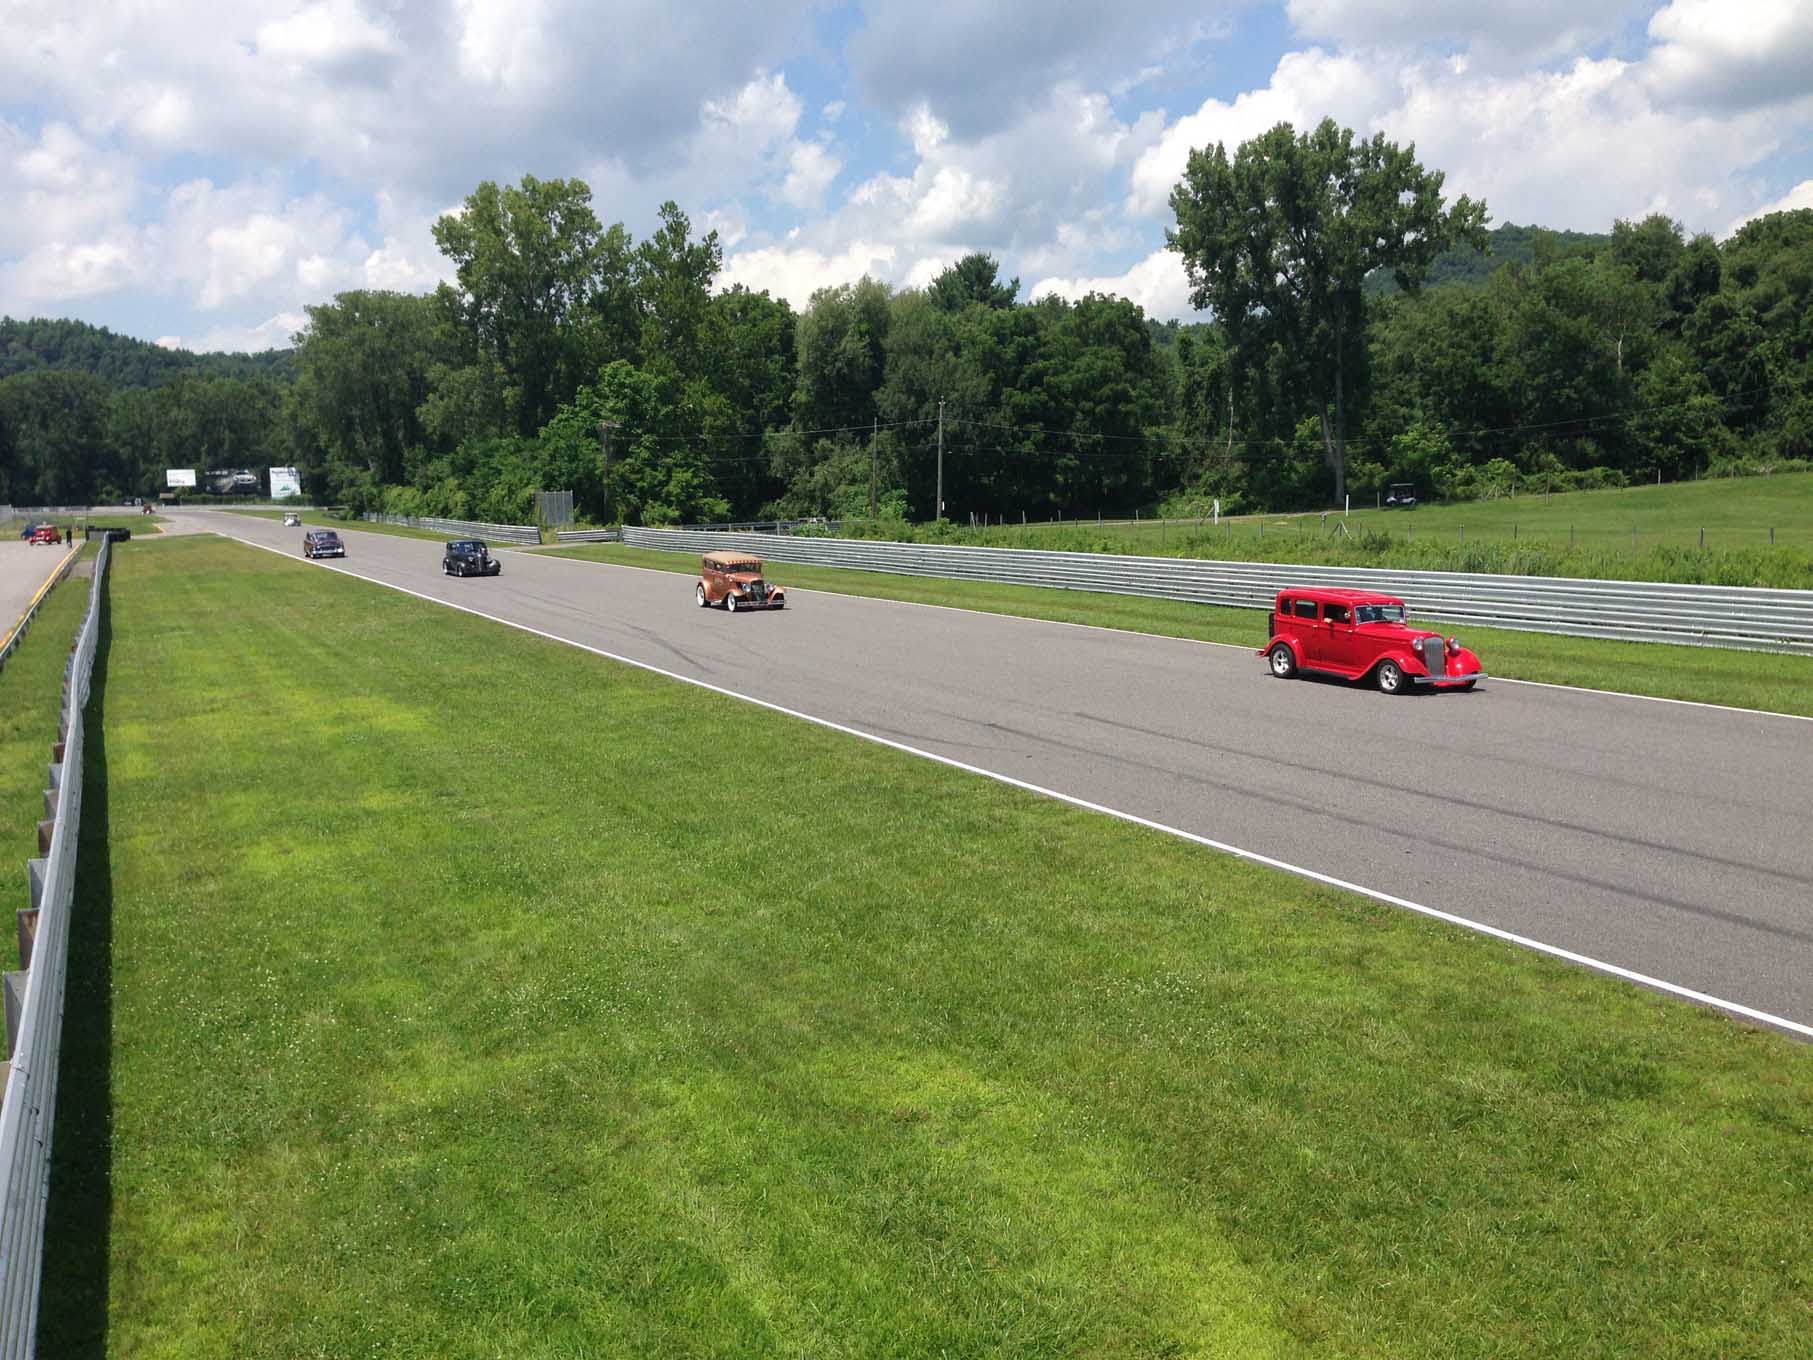 It is not often that folks get a chance to take some hot laps around a world class race course in their street rods. The great folks at Lime Rock Park in Salisbury, CT, let us do just that on Monday afternoon.  It was one of the high points of the week for many of the Road Tourians.